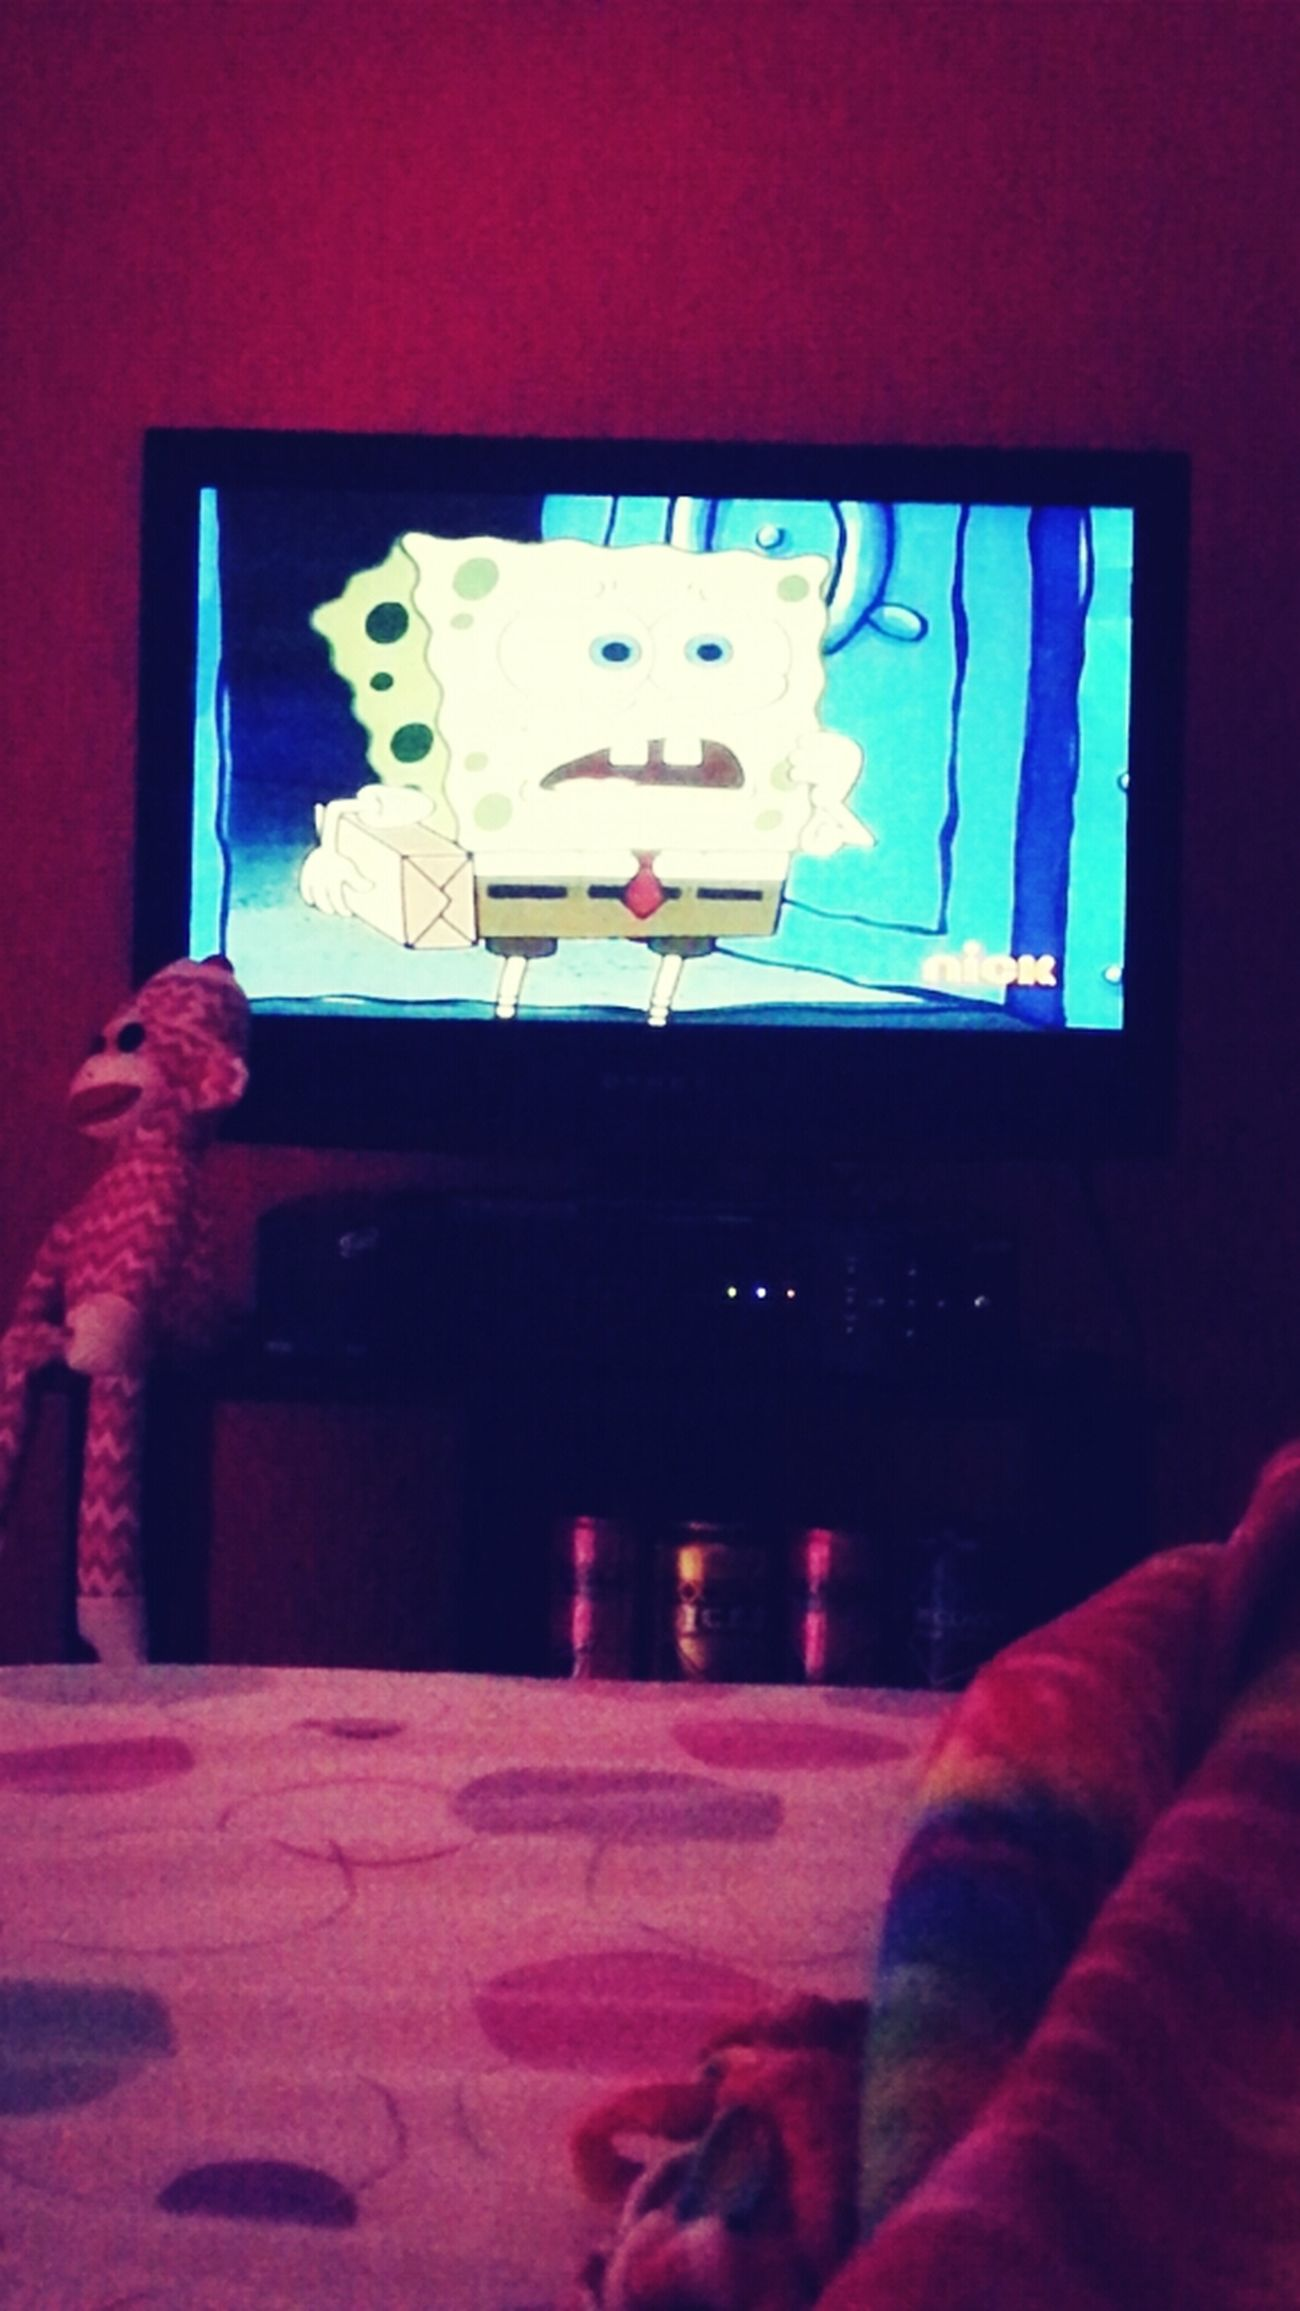 Watching Spongebob